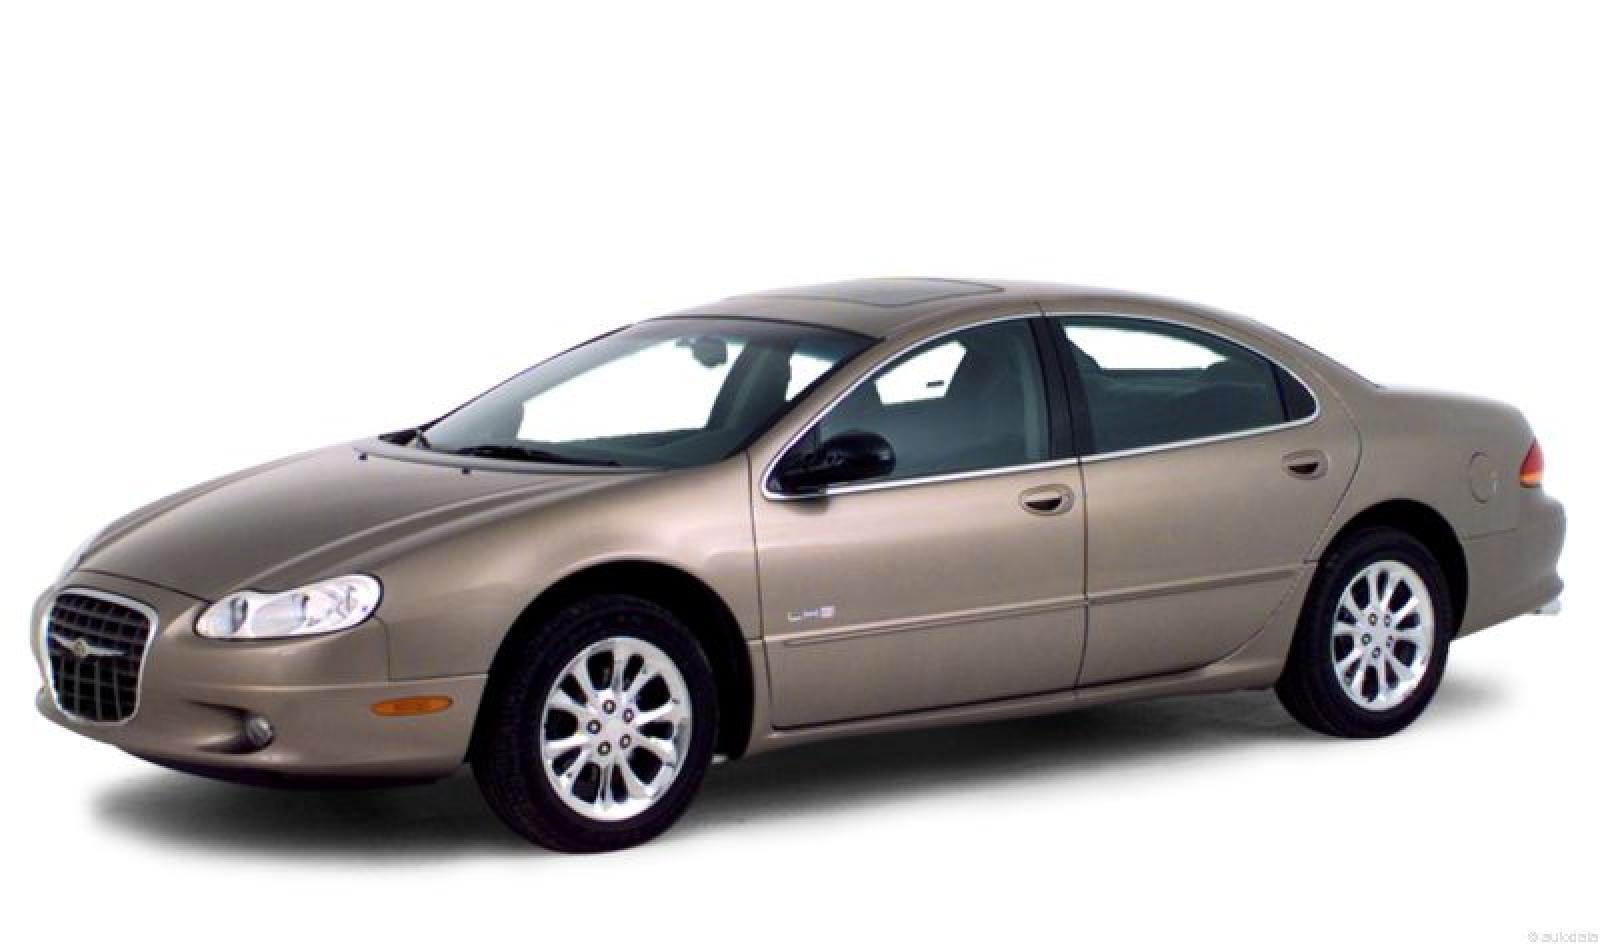 Chrysler Lhs on 2000 Chrysler Lhs